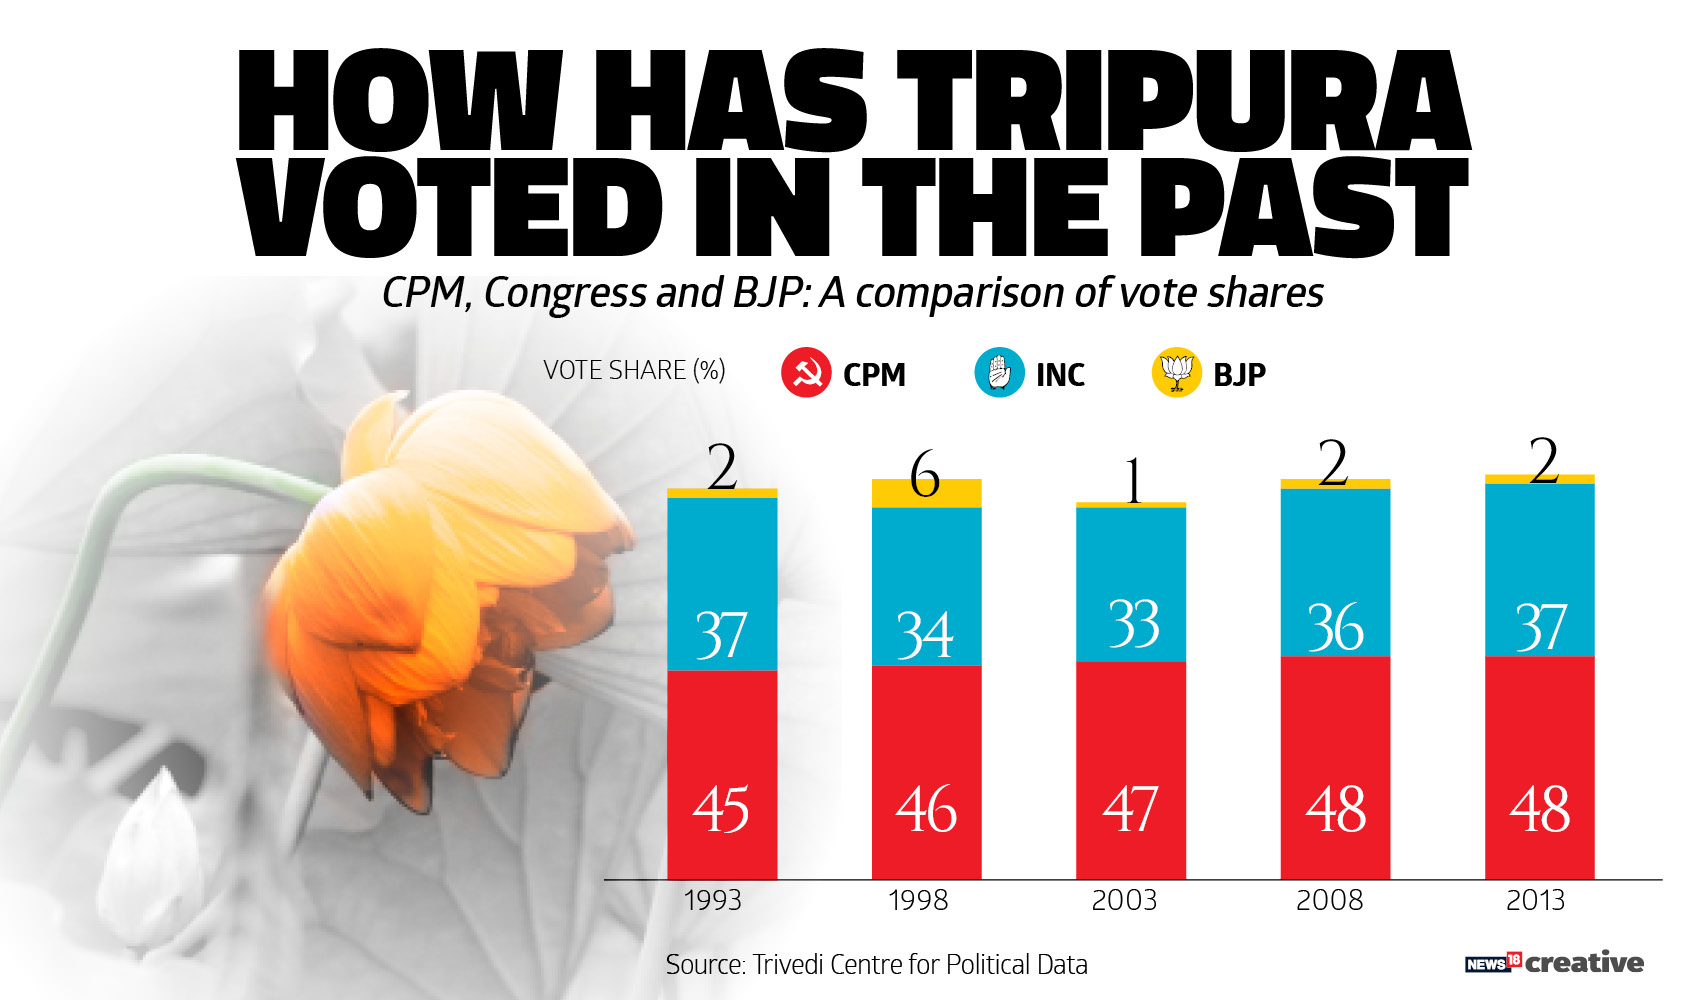 How Tripura has voted in the past